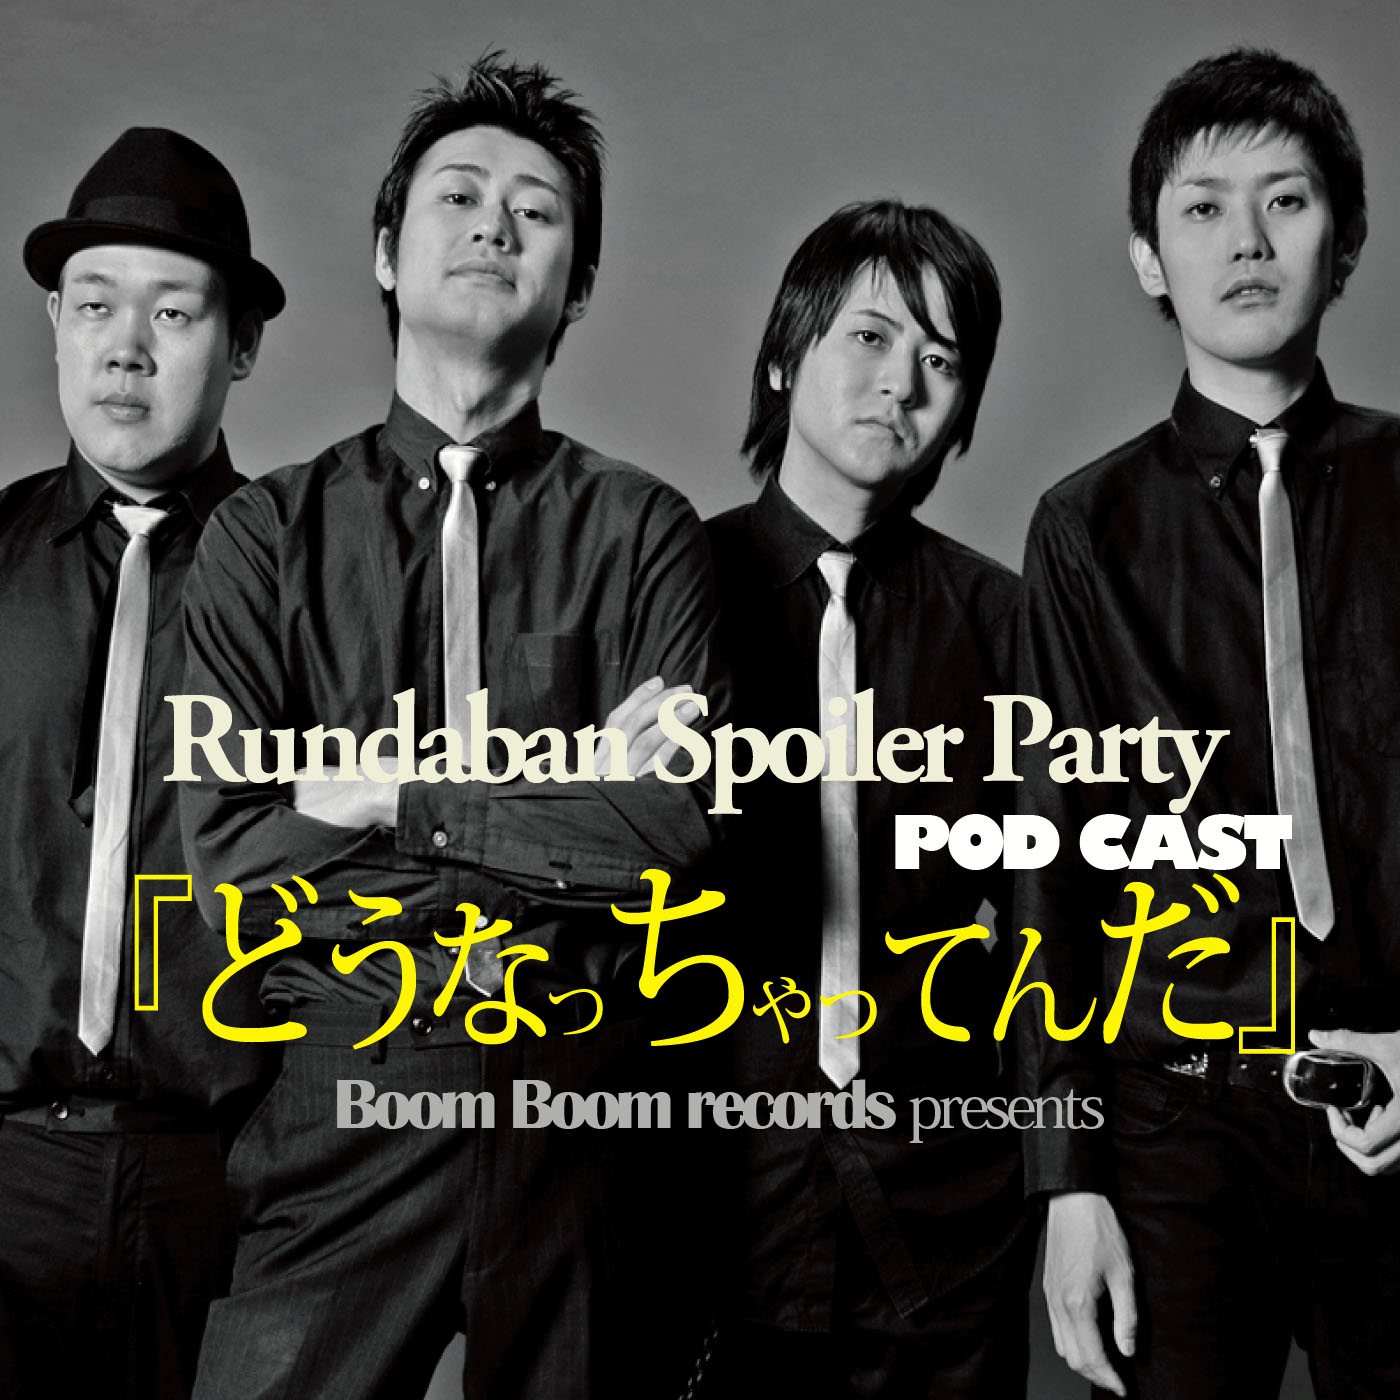 Rundaban Spoiler Party podcast「どうなっちゃってんだ」